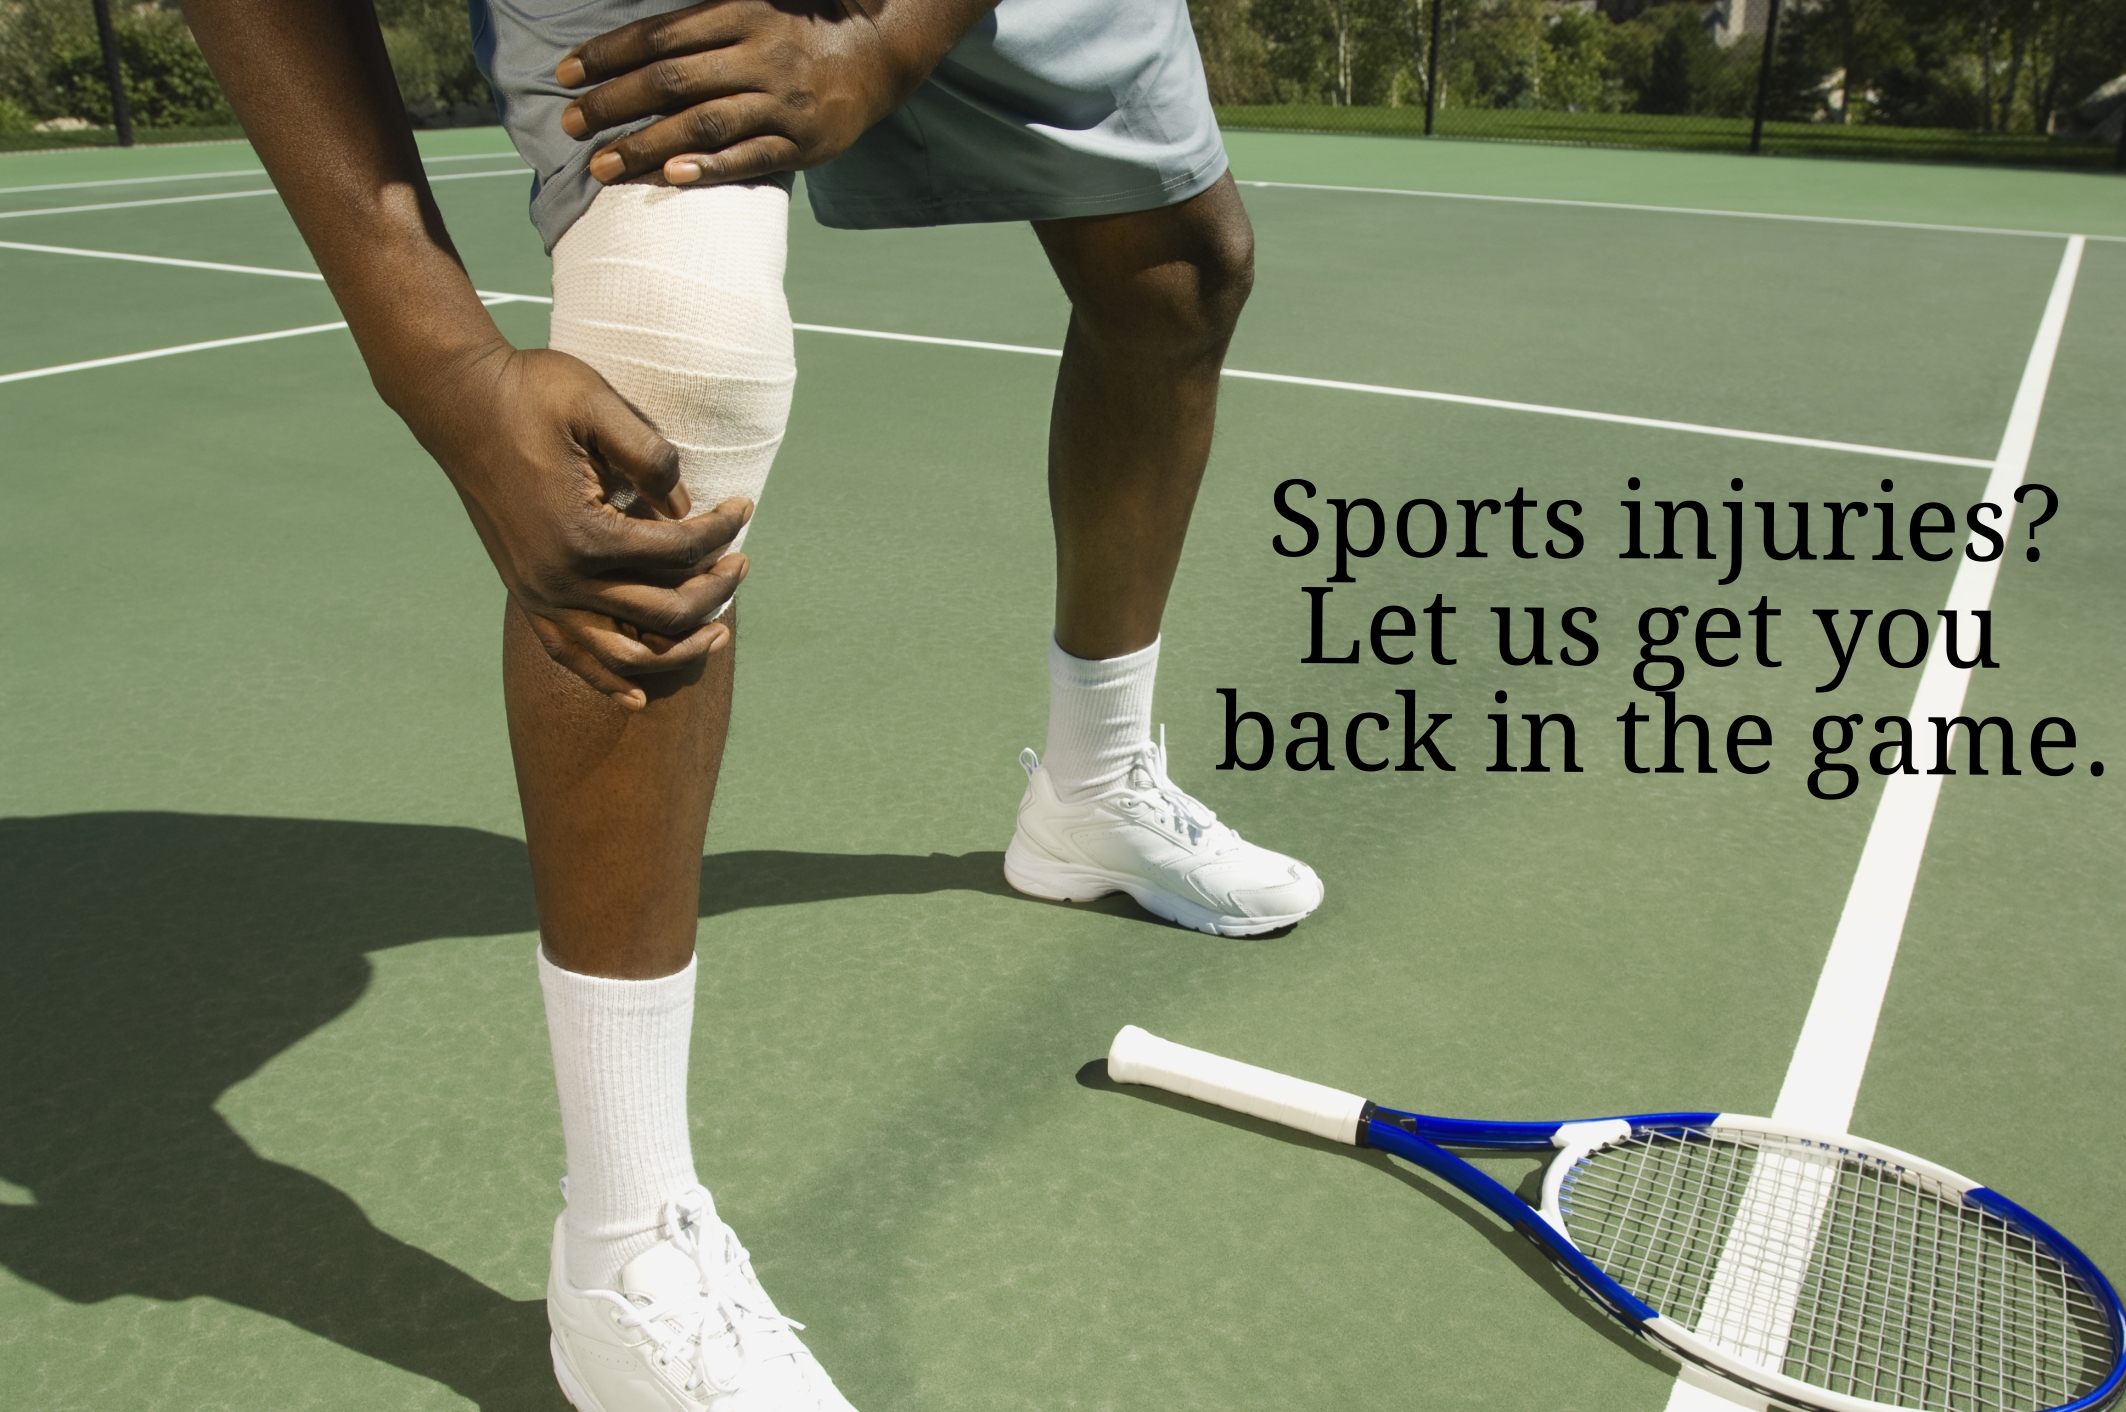 Sports injuries? Let us get you back into the game (A tennis player holds his injured and wrapped knee).